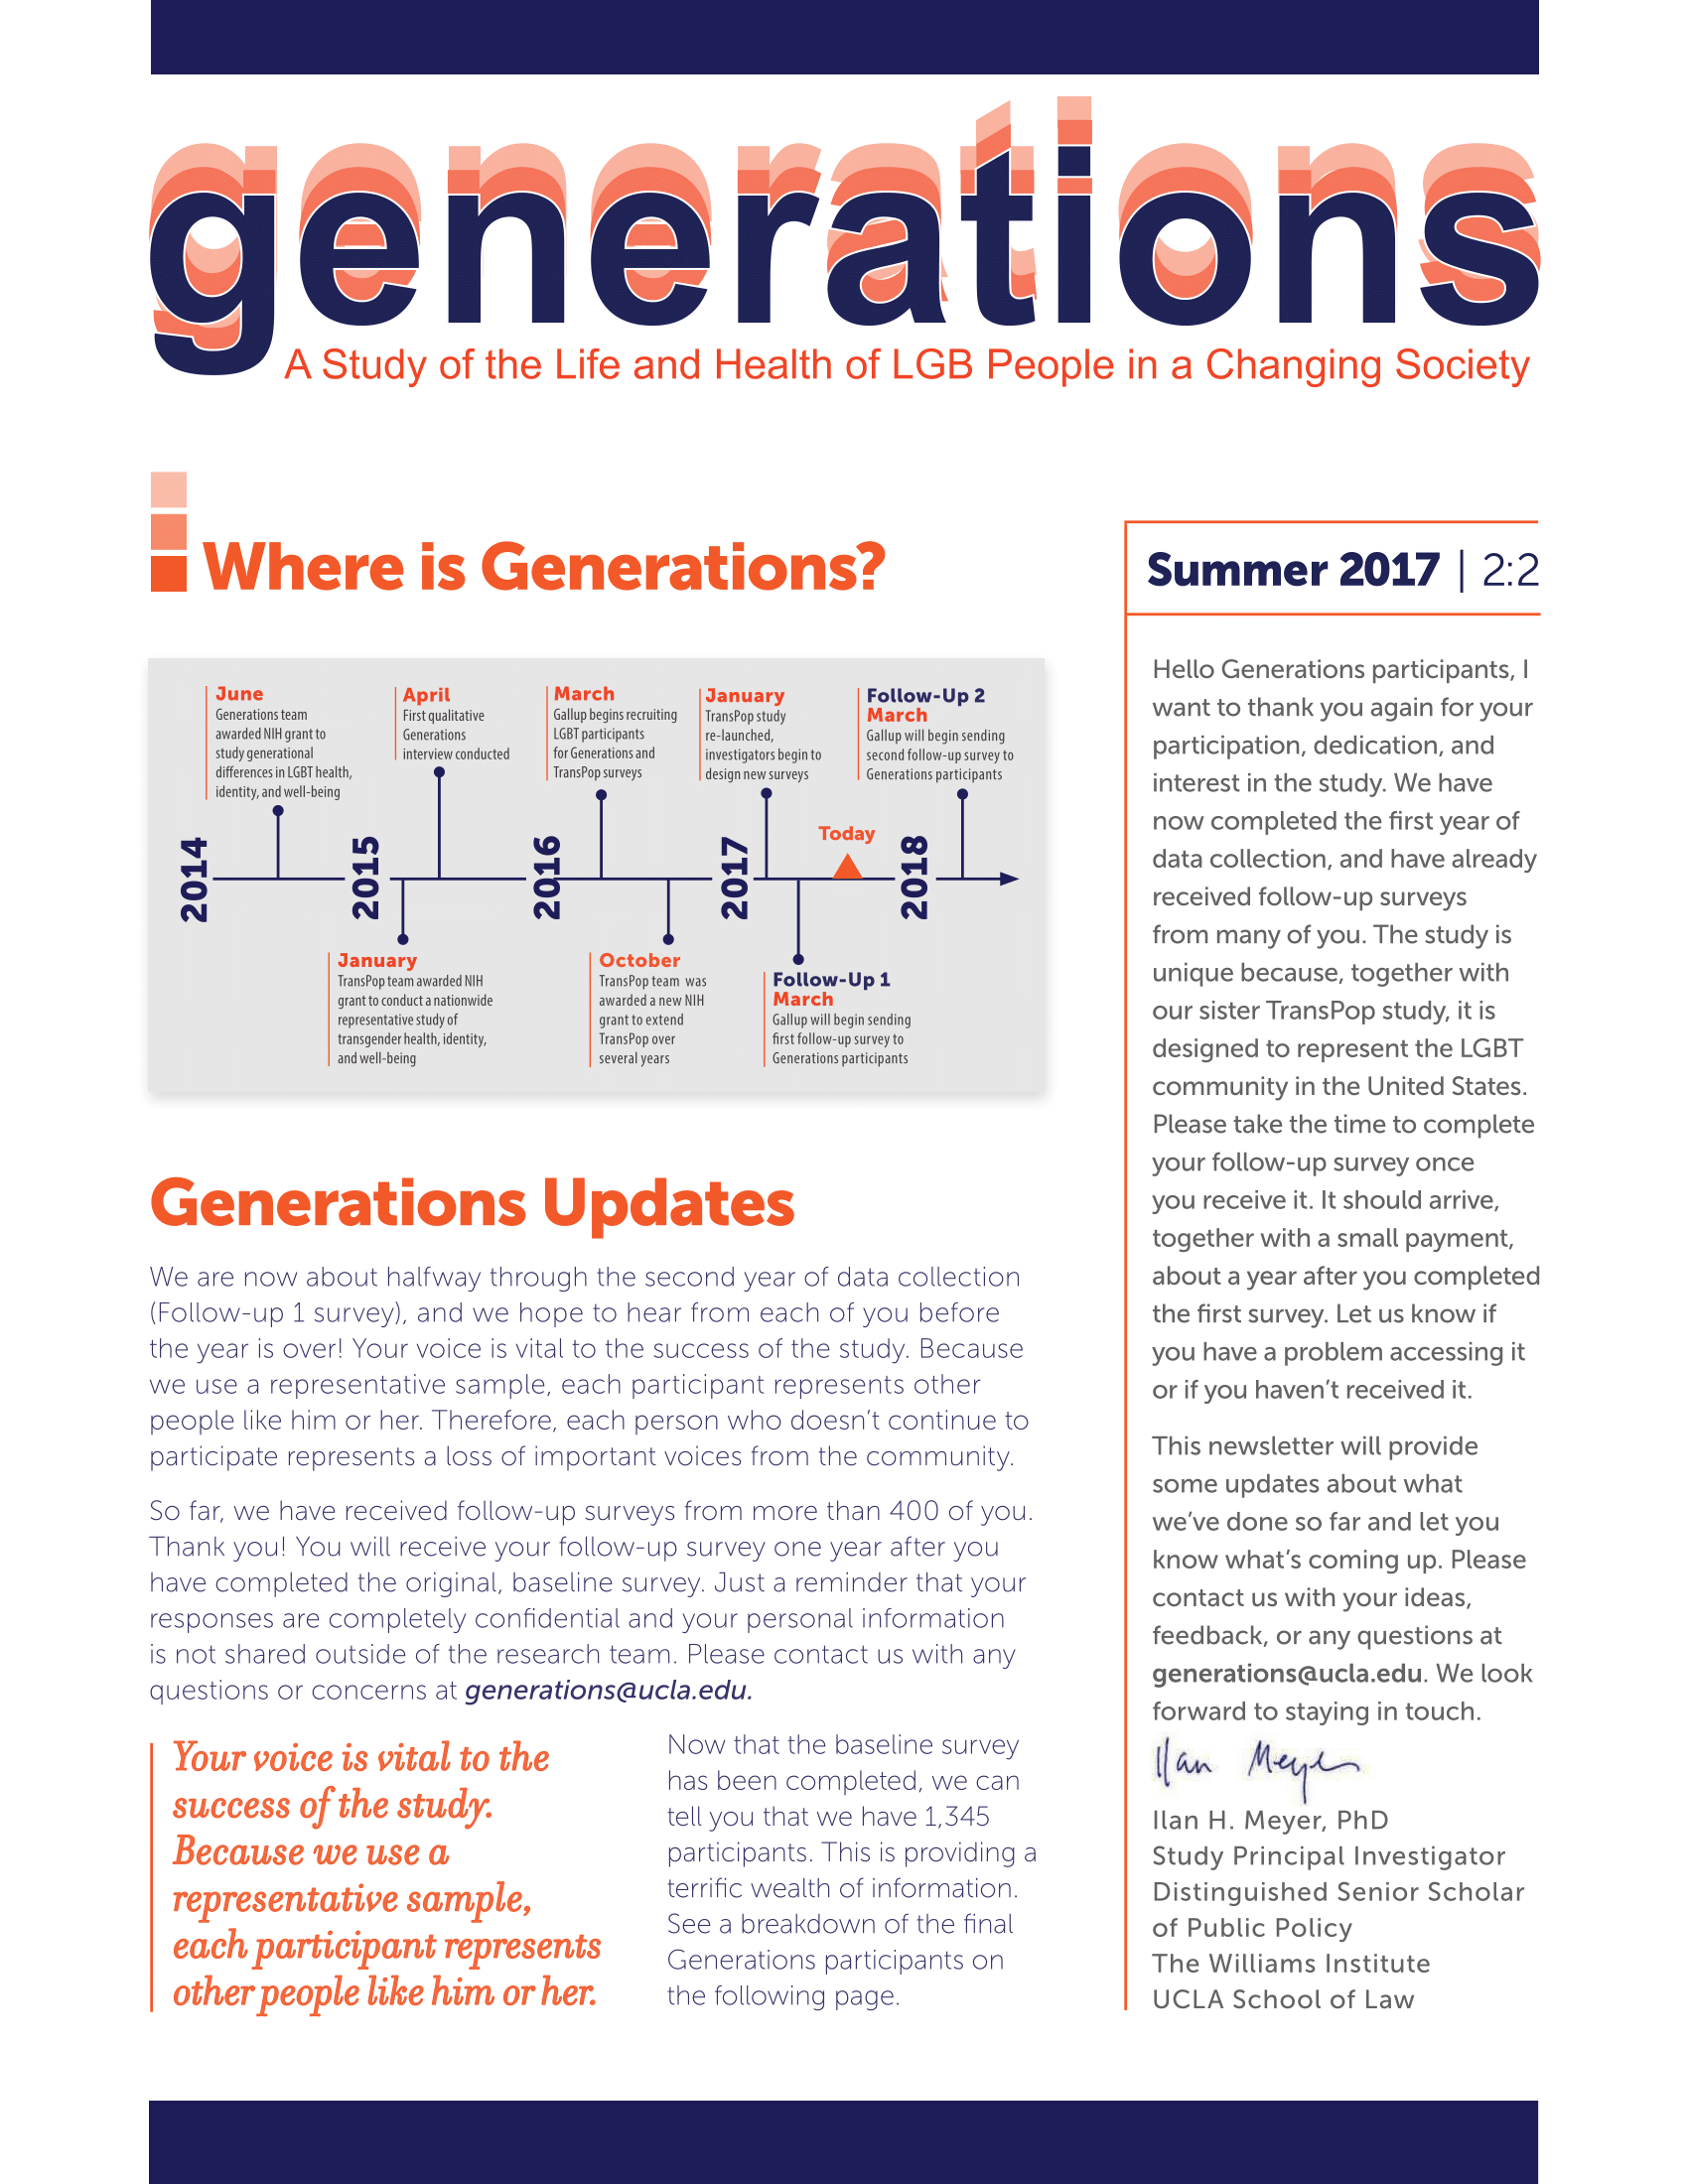 UCLAWI_GenerationsNewsletter_Summer2017_4-1.png